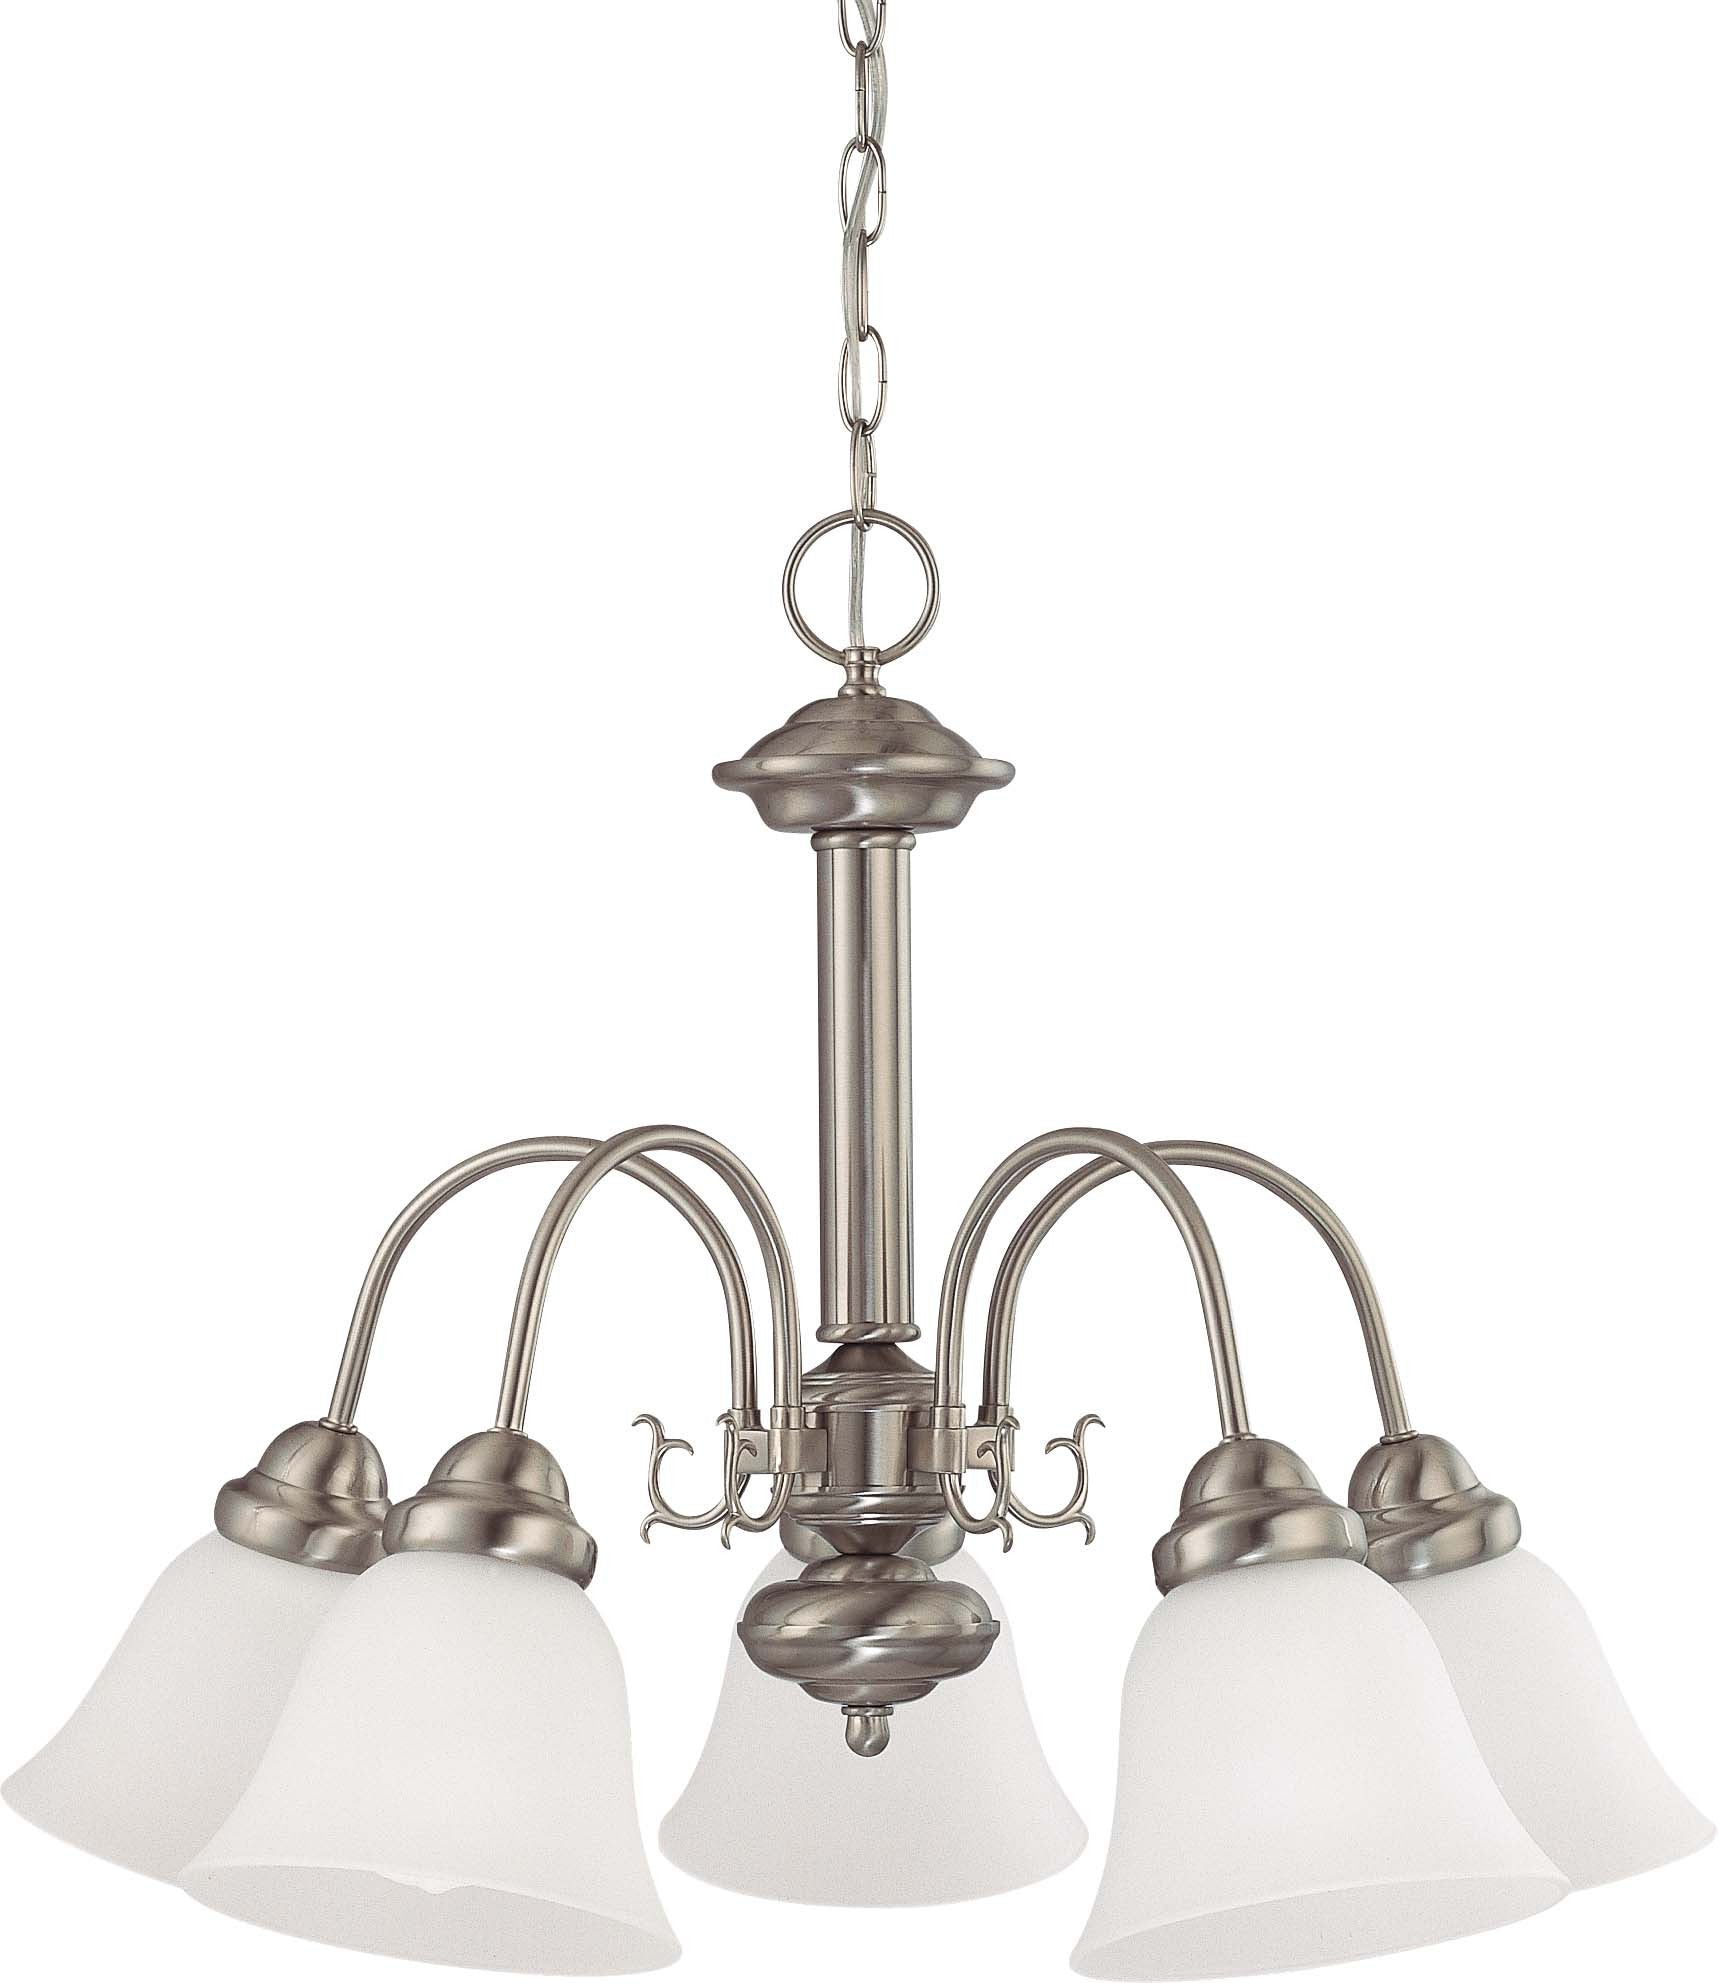 """Nuvo Ballerina 5-Light 24"""" Chandelier w/ Frosted White Glass in Brushed Nickel"""